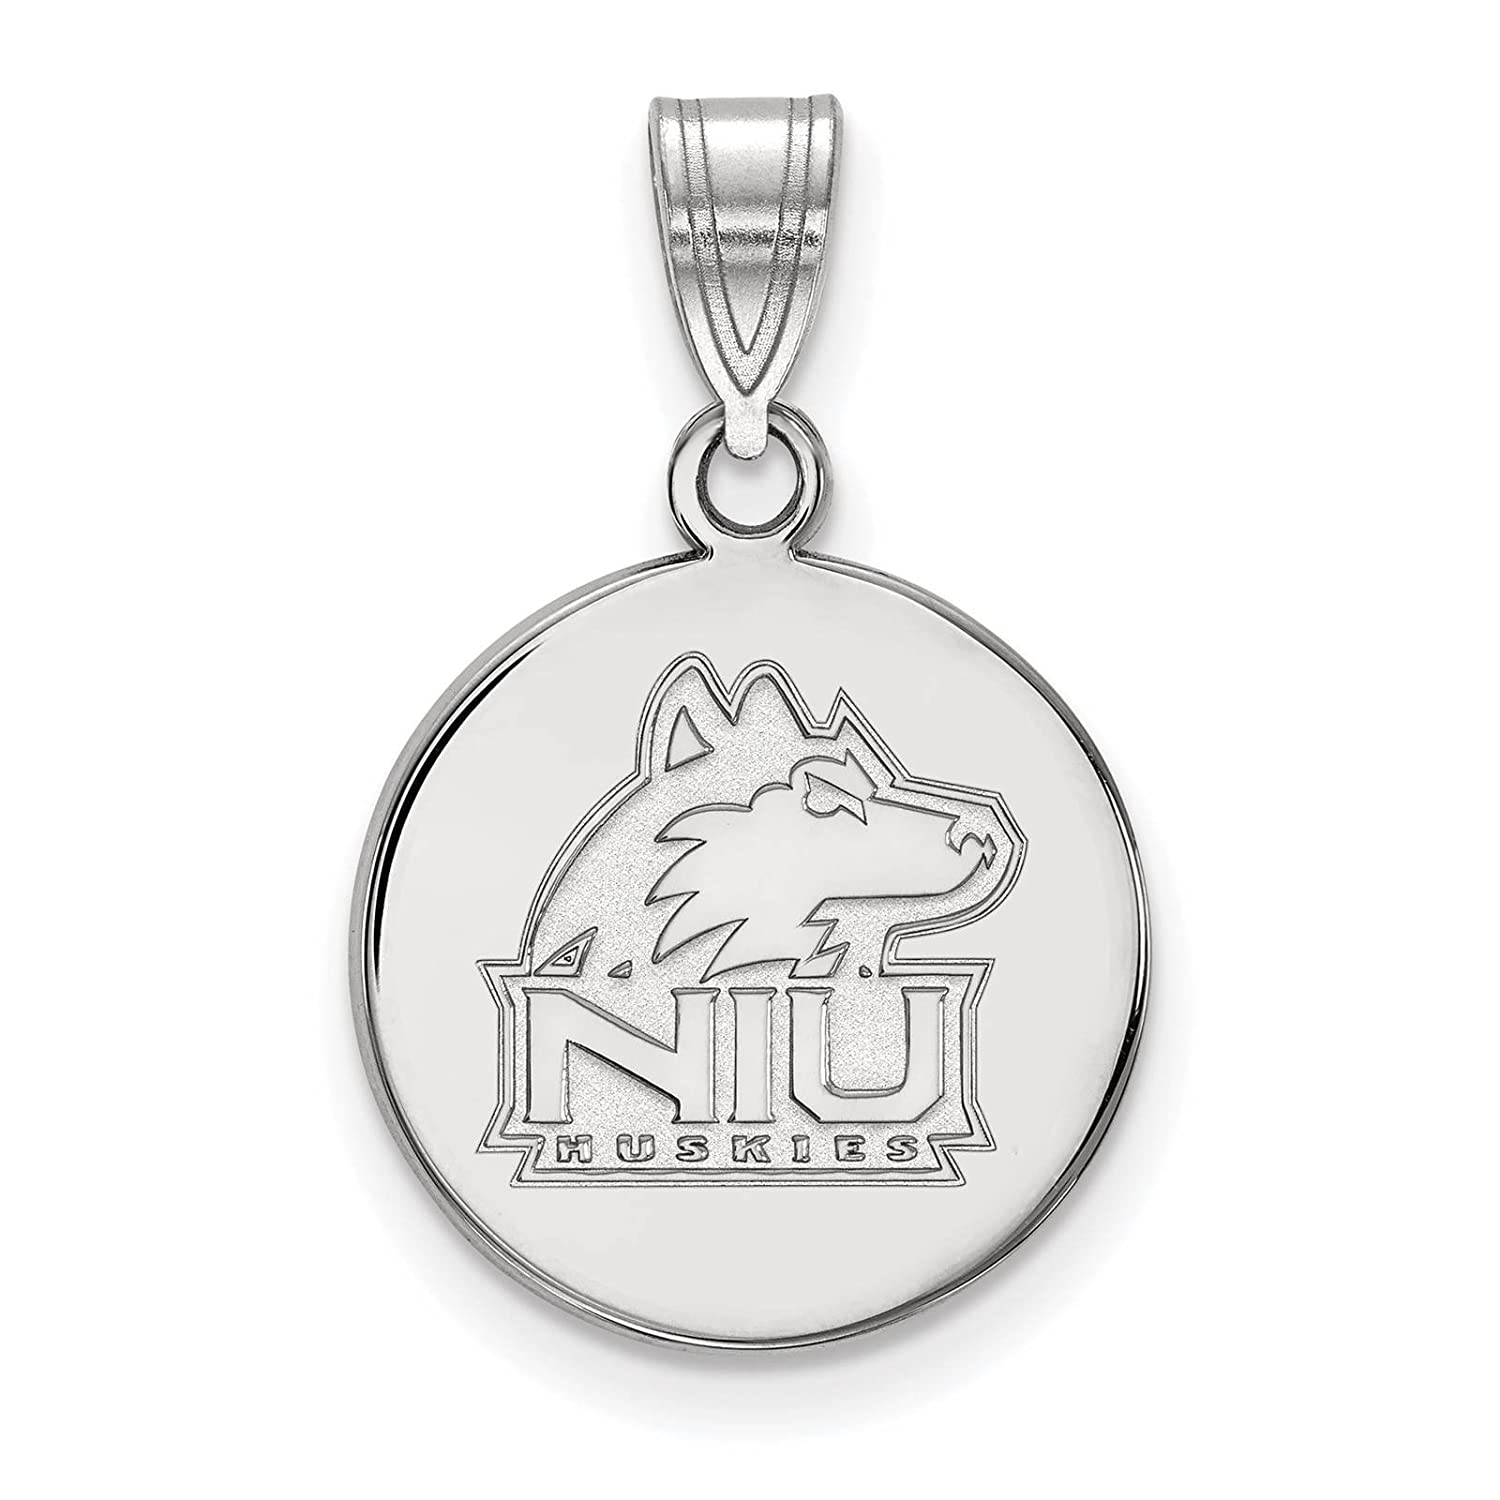 925 Sterling Silver Rhodium-plated Laser-cut Northern Illinois University Medium Disc Pendant